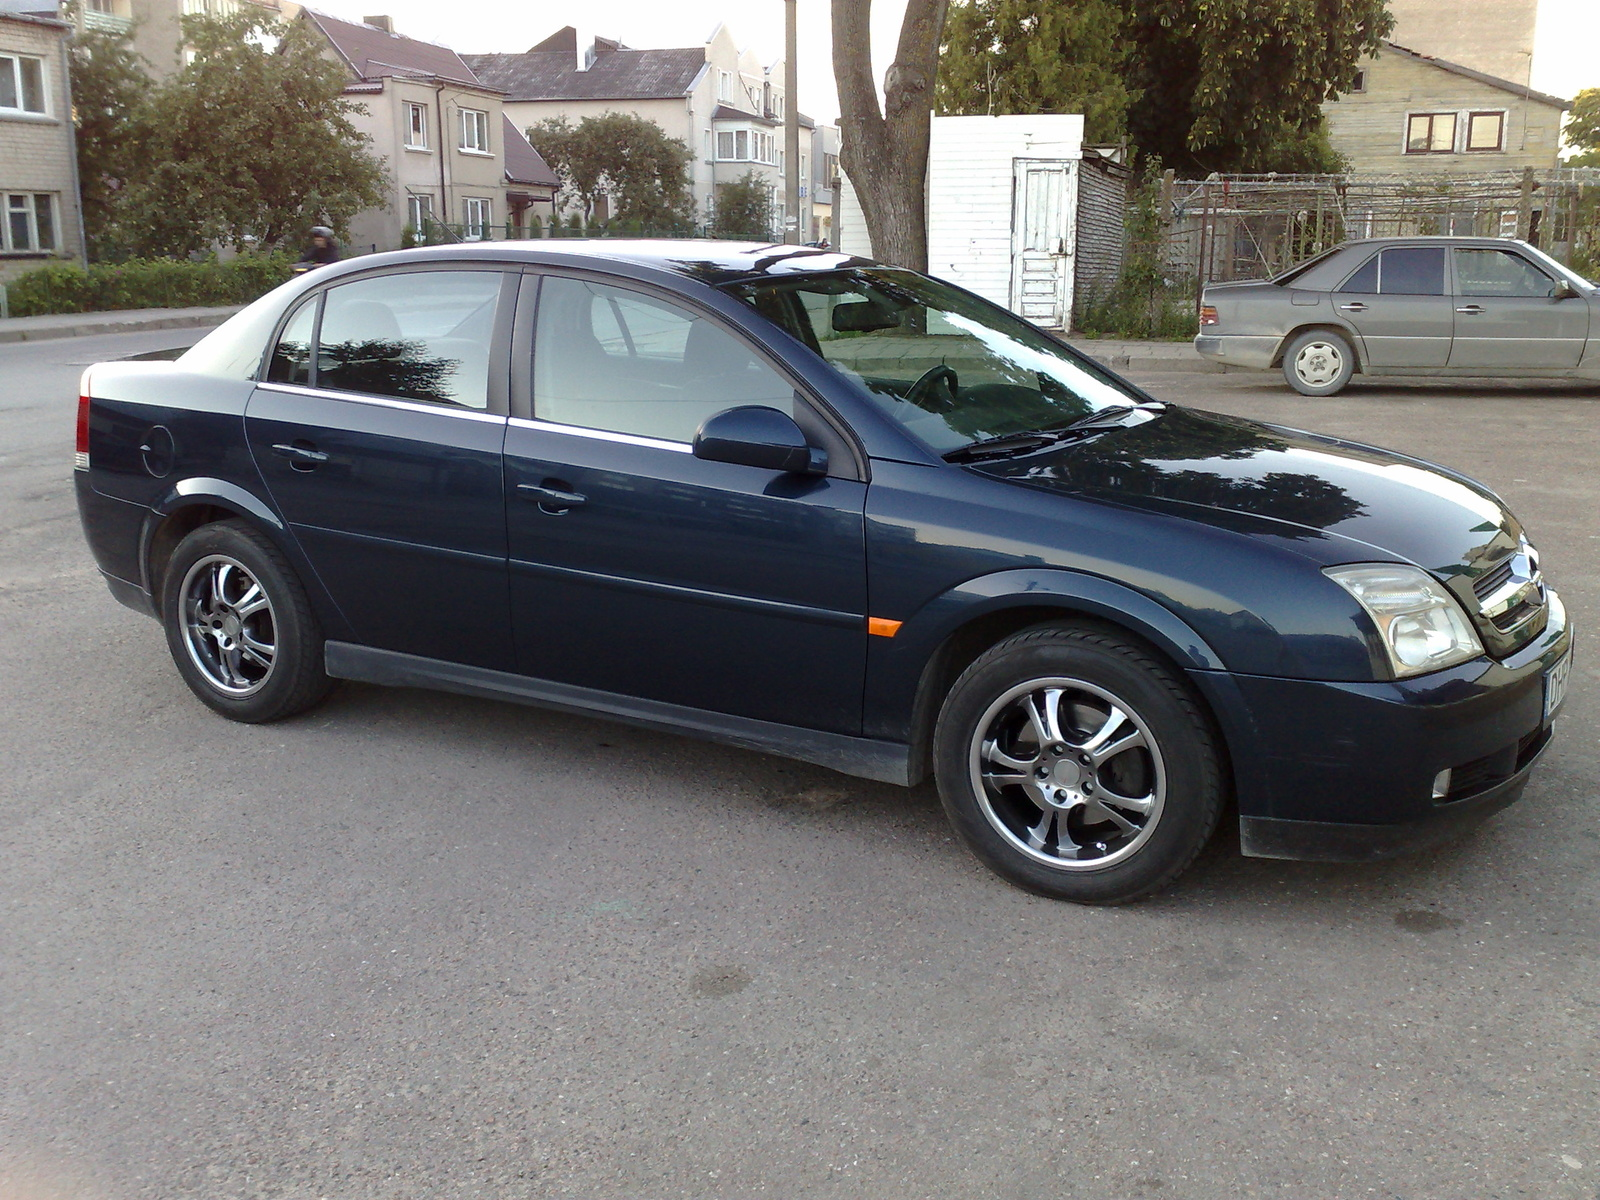 2003 Vauxhall Vectra Photos Informations Articles